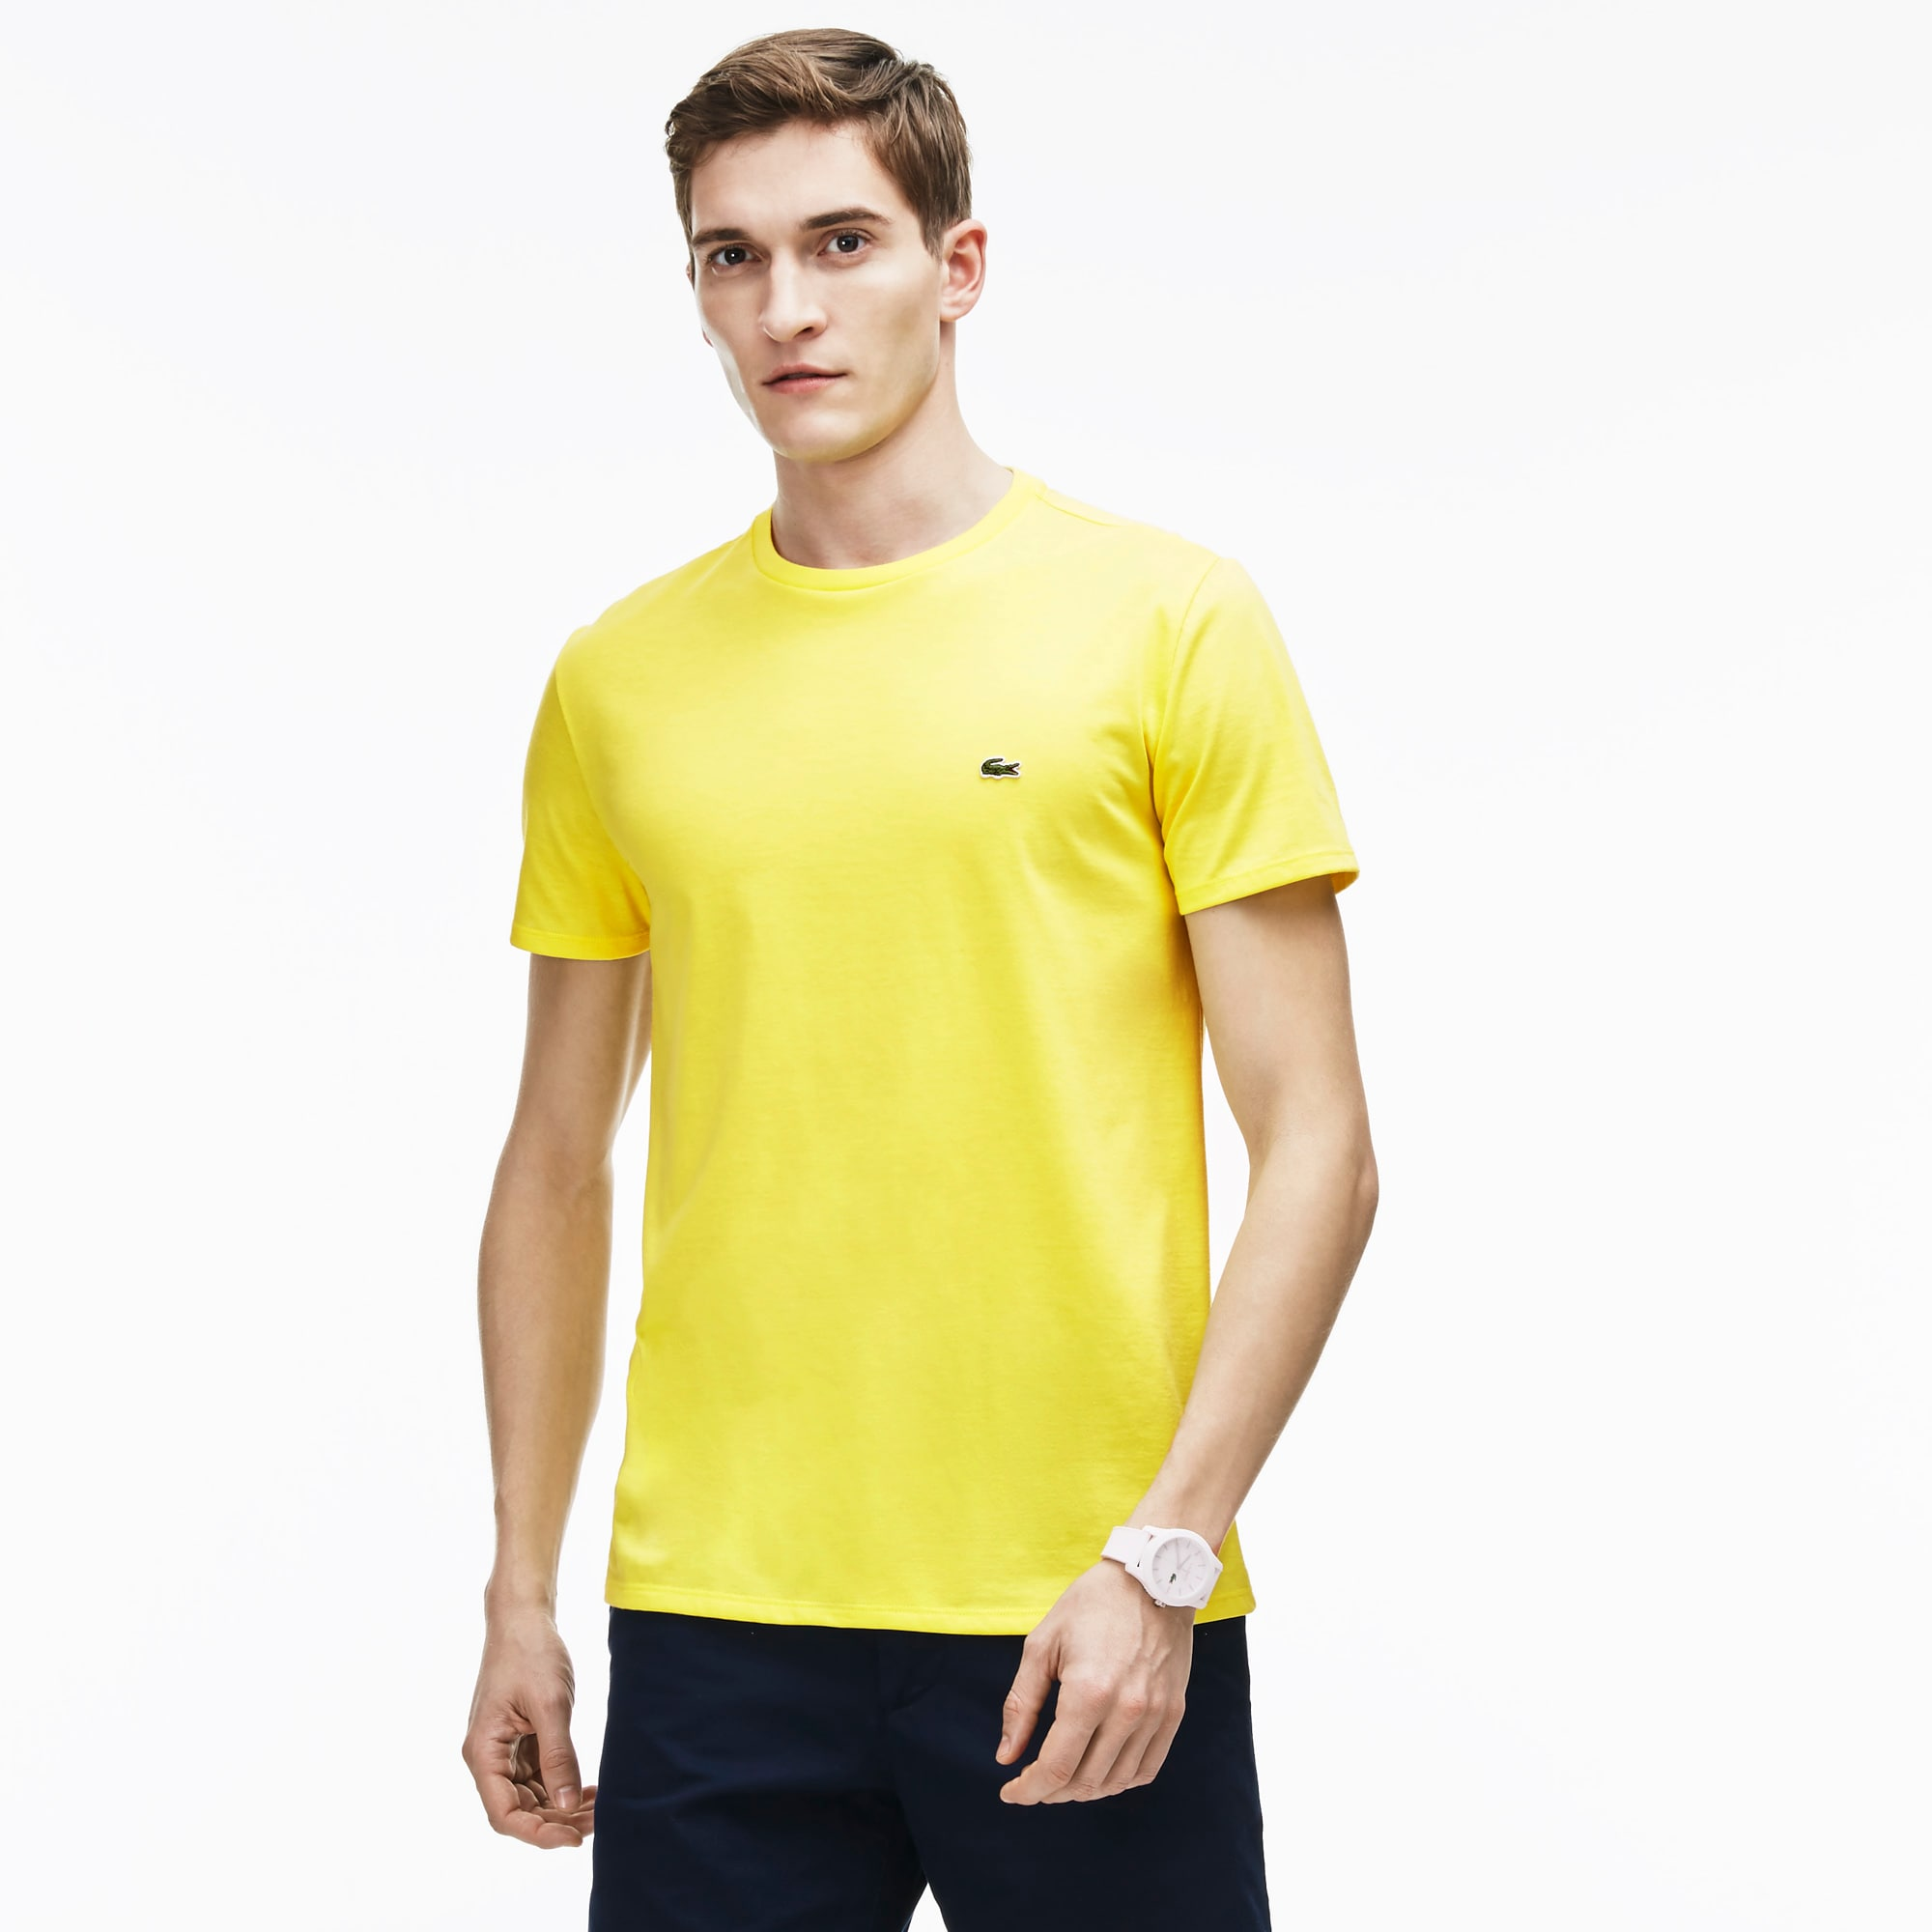 Camisetas moda masculina lacoste for Online buying sites in usa